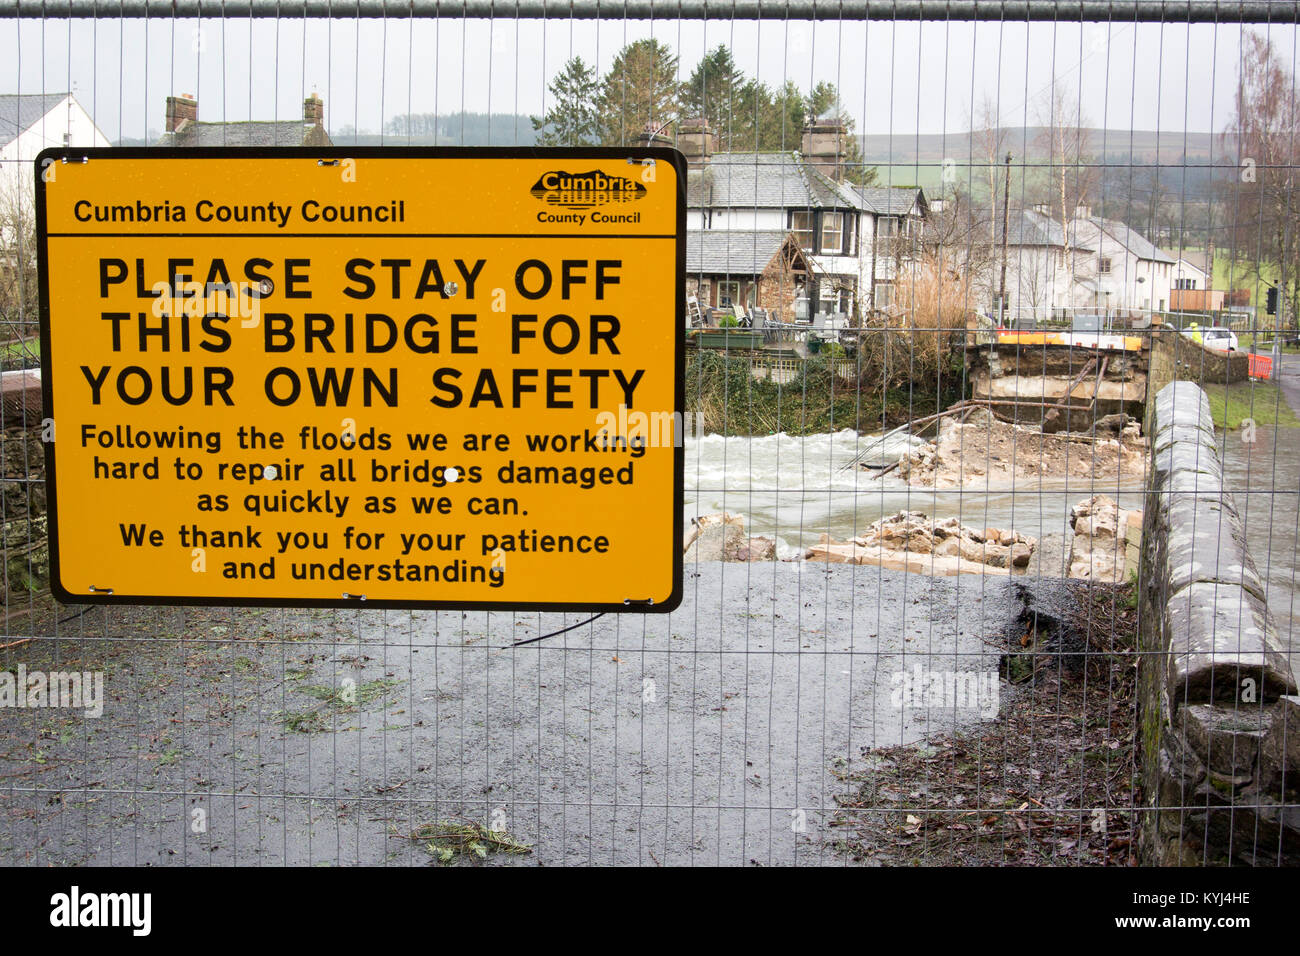 Safety barriers protecting bridge washed away after Storm Desmond in Cumbria, UK, 2015. - Stock Image